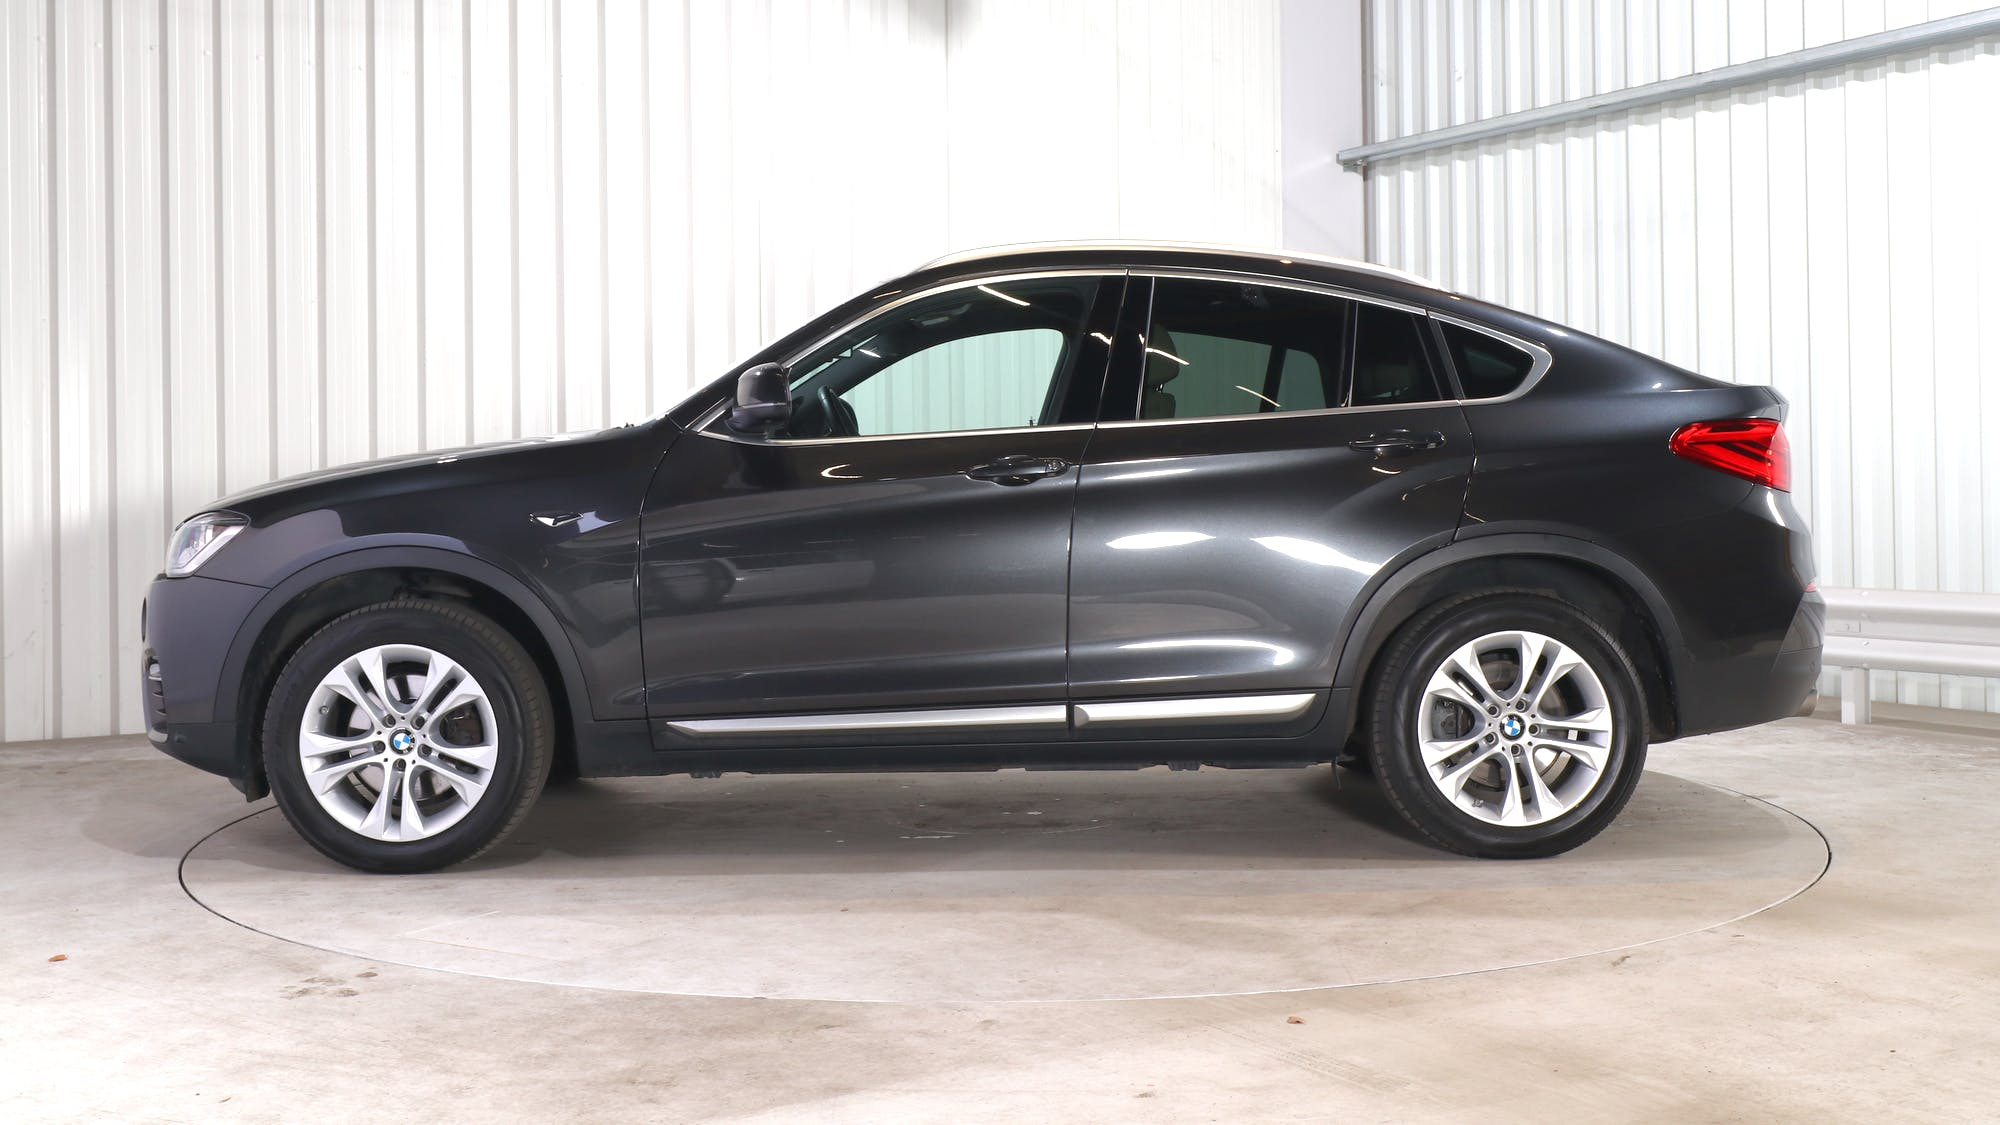 BMW X4 leasing exterior 2